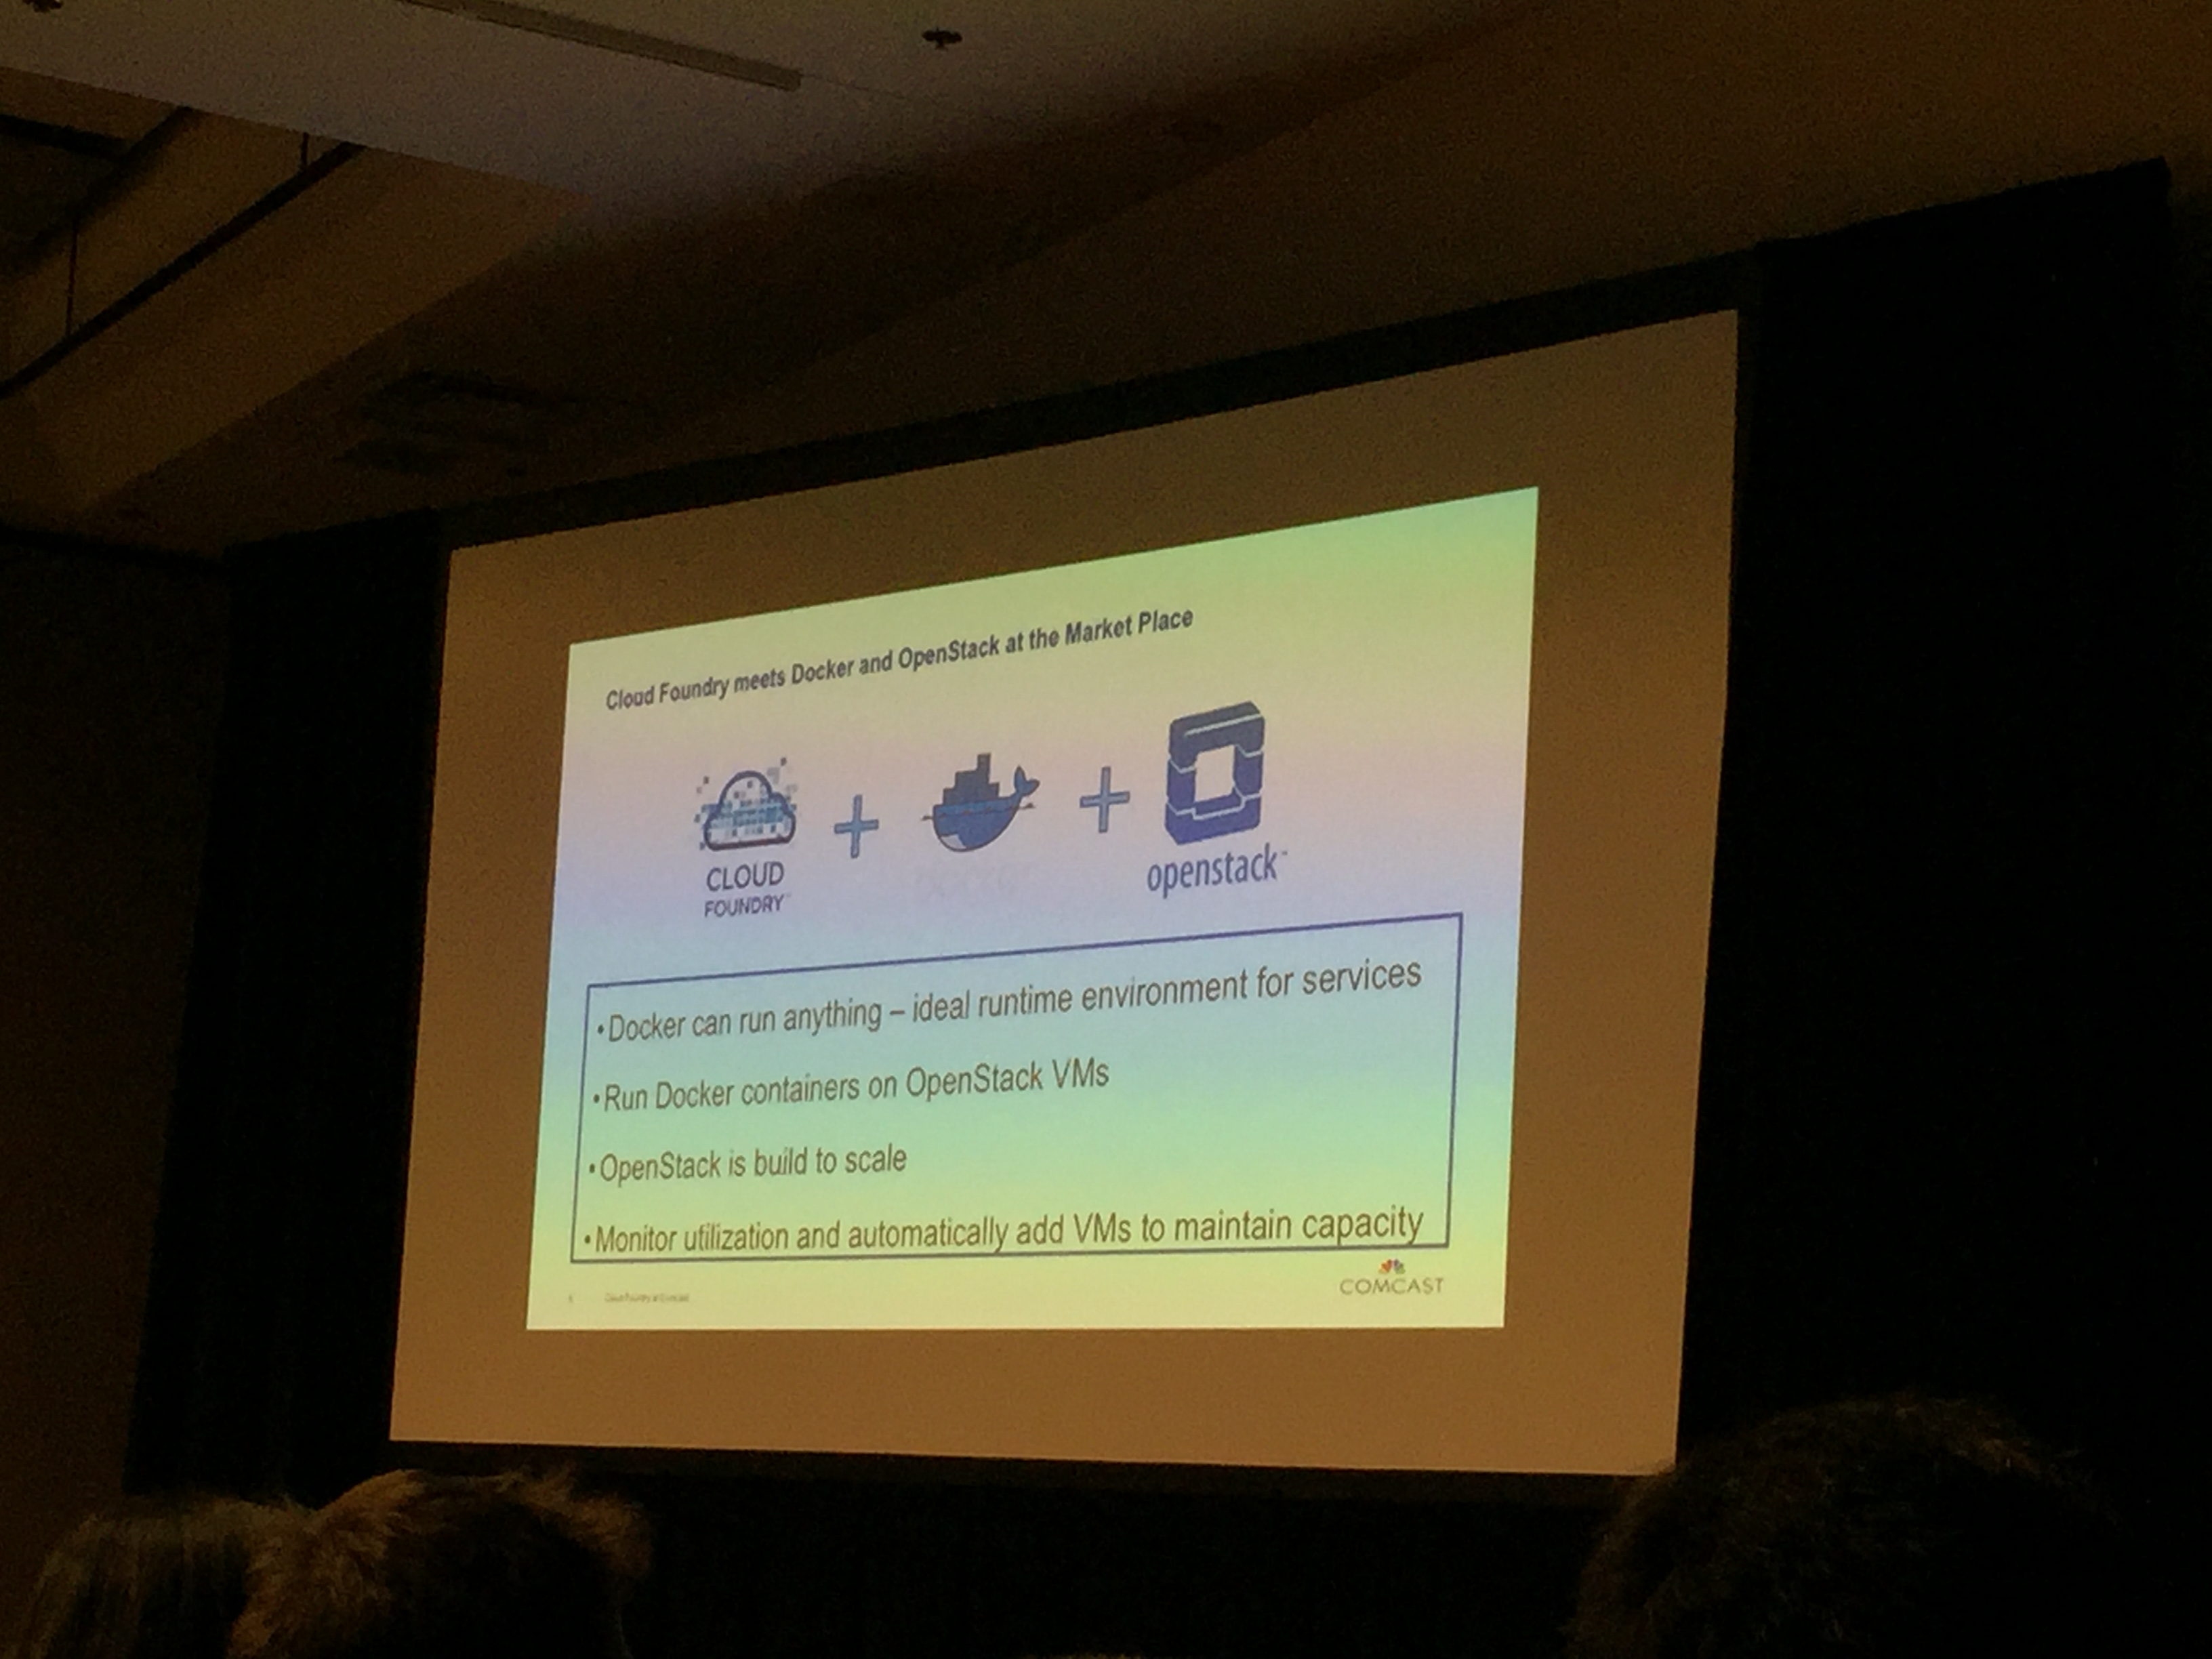 Cloud Foundry meets Docker and OpenStack at the Market Place